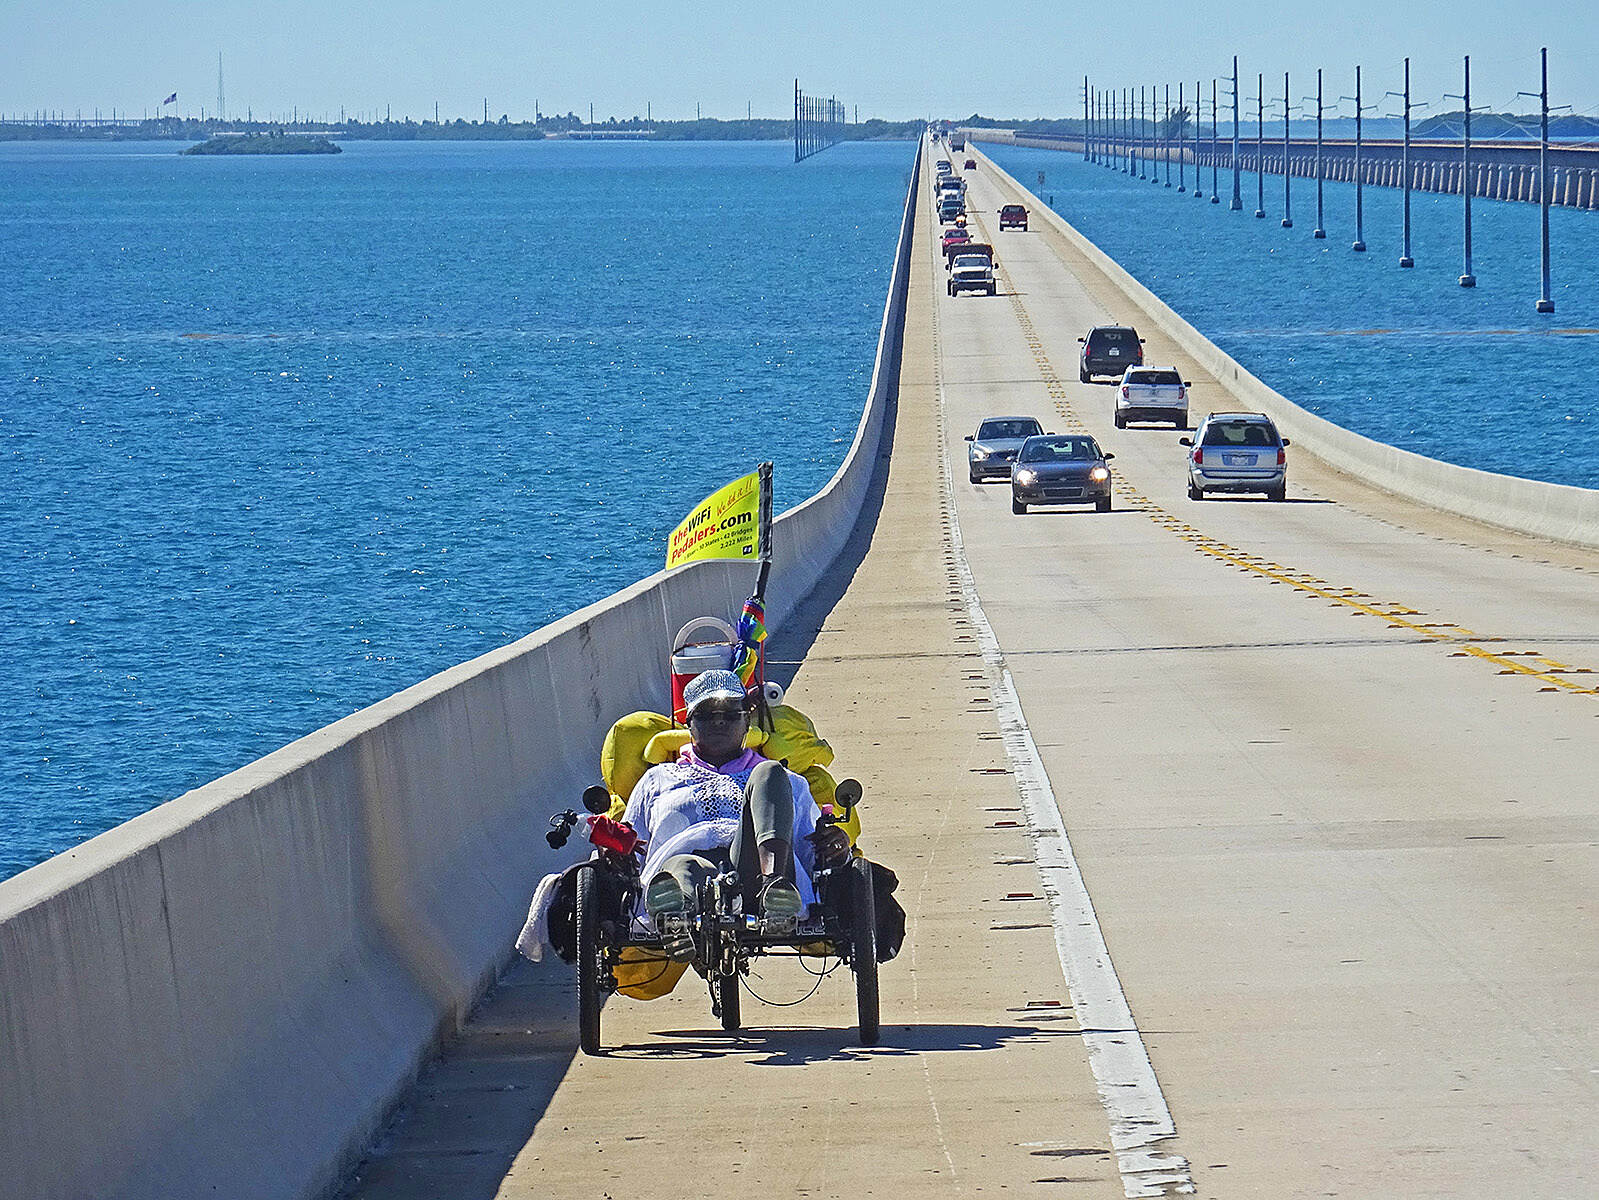 Florida Keys Overseas Heritage Trail WiFi Pedalers on 7-mile Bridge We may be the first recumbents to cycle the entire Keys, starting at Key West, and continuing through Key Largo on our way to Miami, Palm Beach, Melbourne, and Orlando. Here Earline climbs the 'hump' of the 7-mile bridge. See blog.thewifipedalers.com.